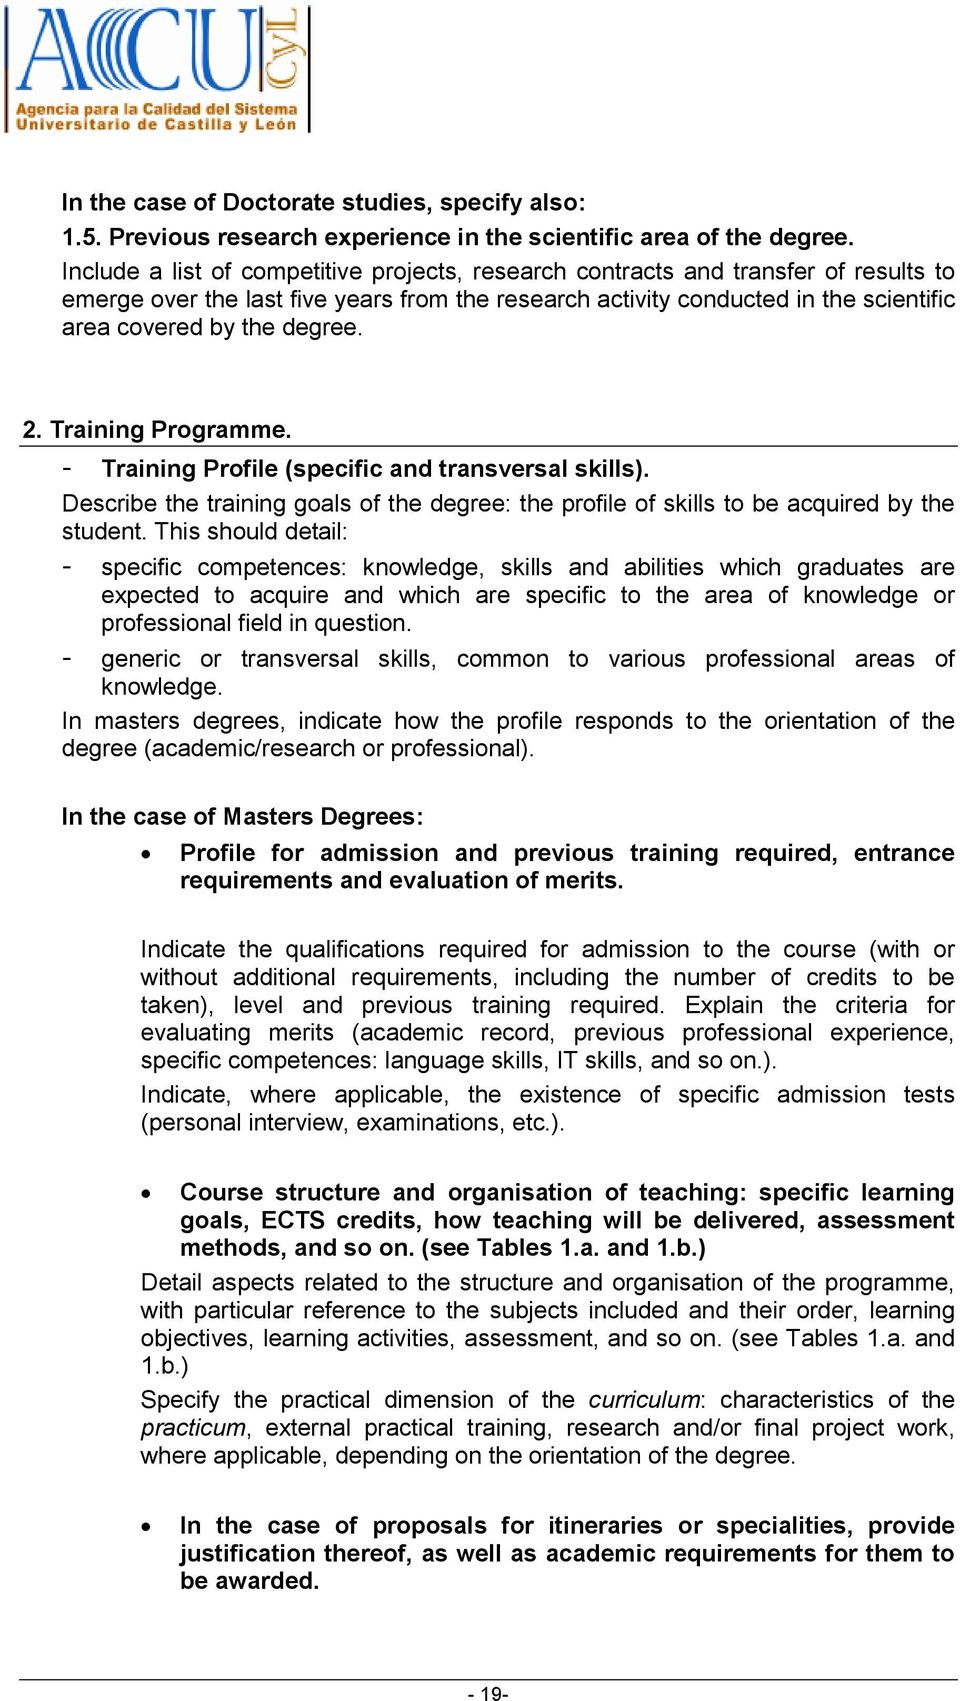 2. Training Programme. - Training Profile (specific and transversal skills). Describe the training goals of the degree: the profile of skills to be acquired by the student.